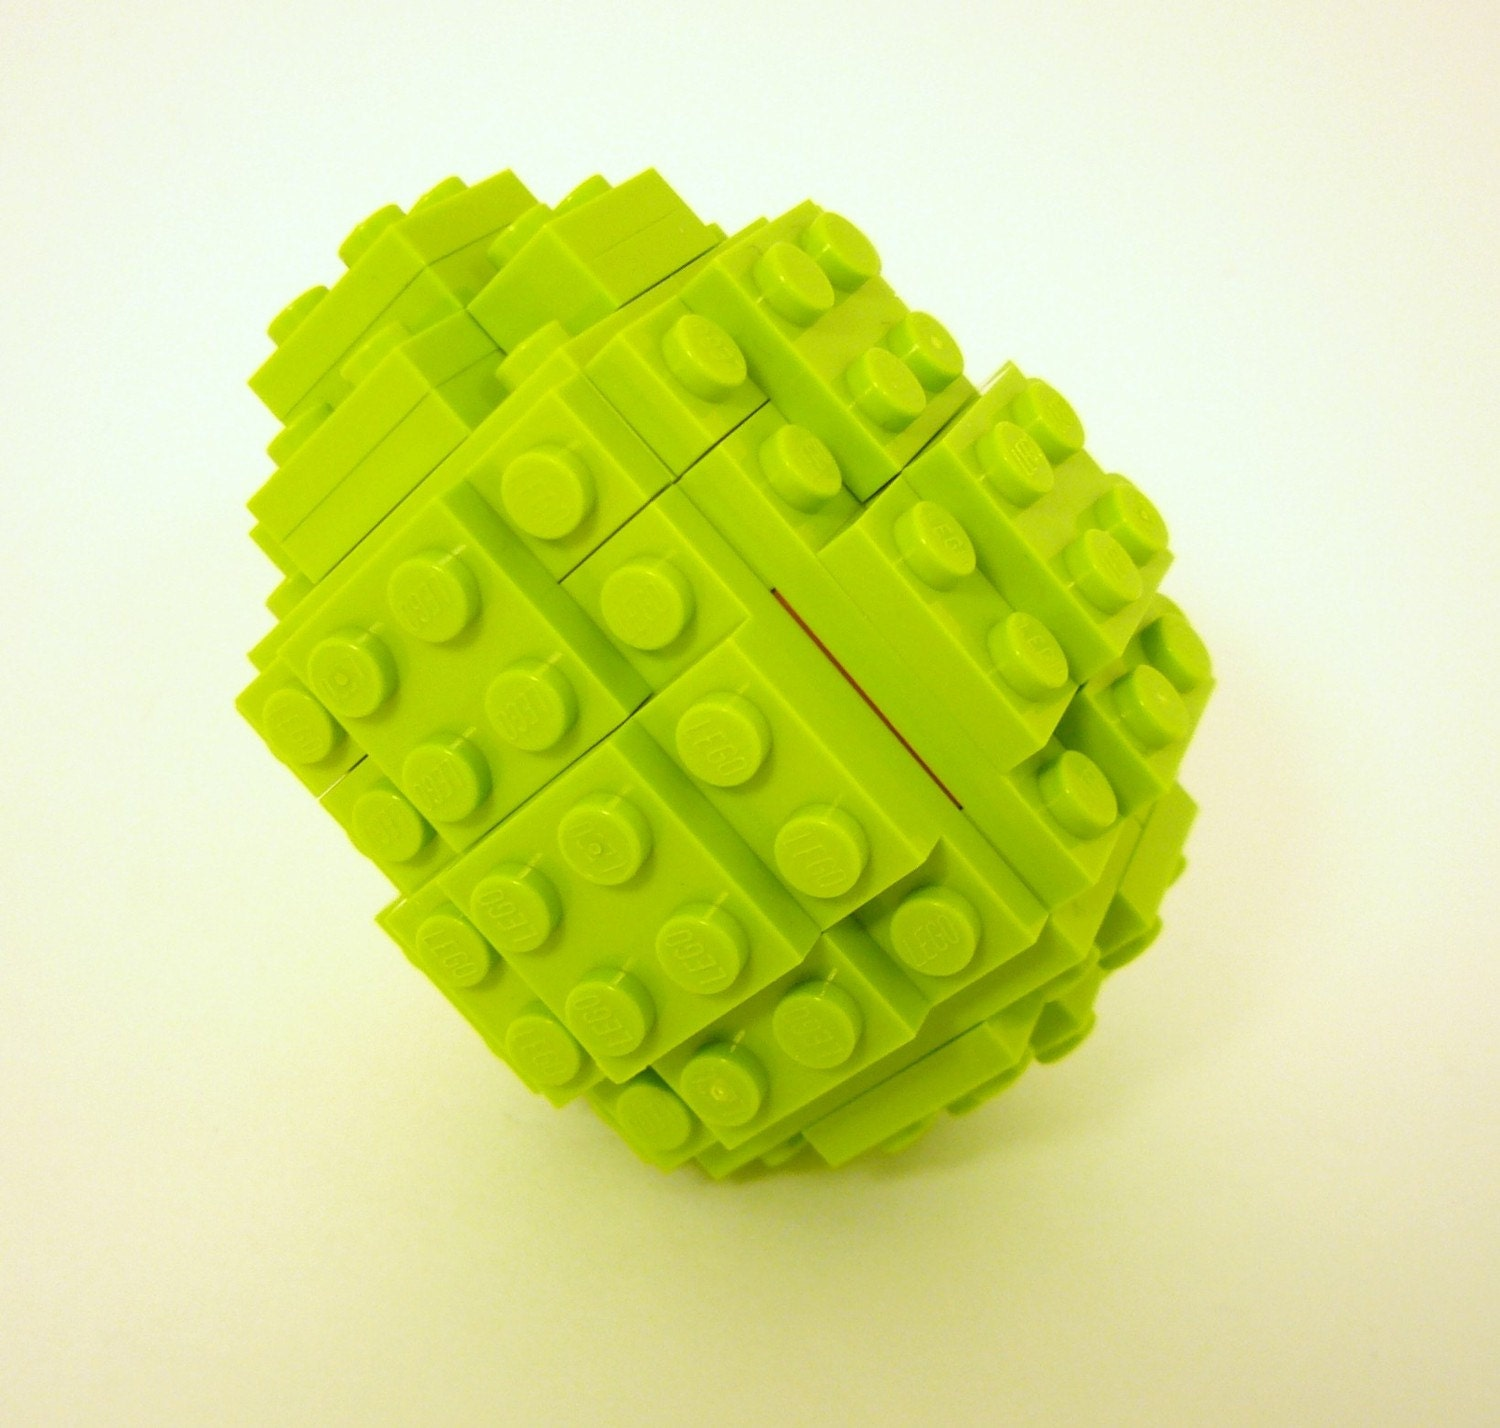 Eggs Building Toys For Boys : Green toy brick easter egg building kit